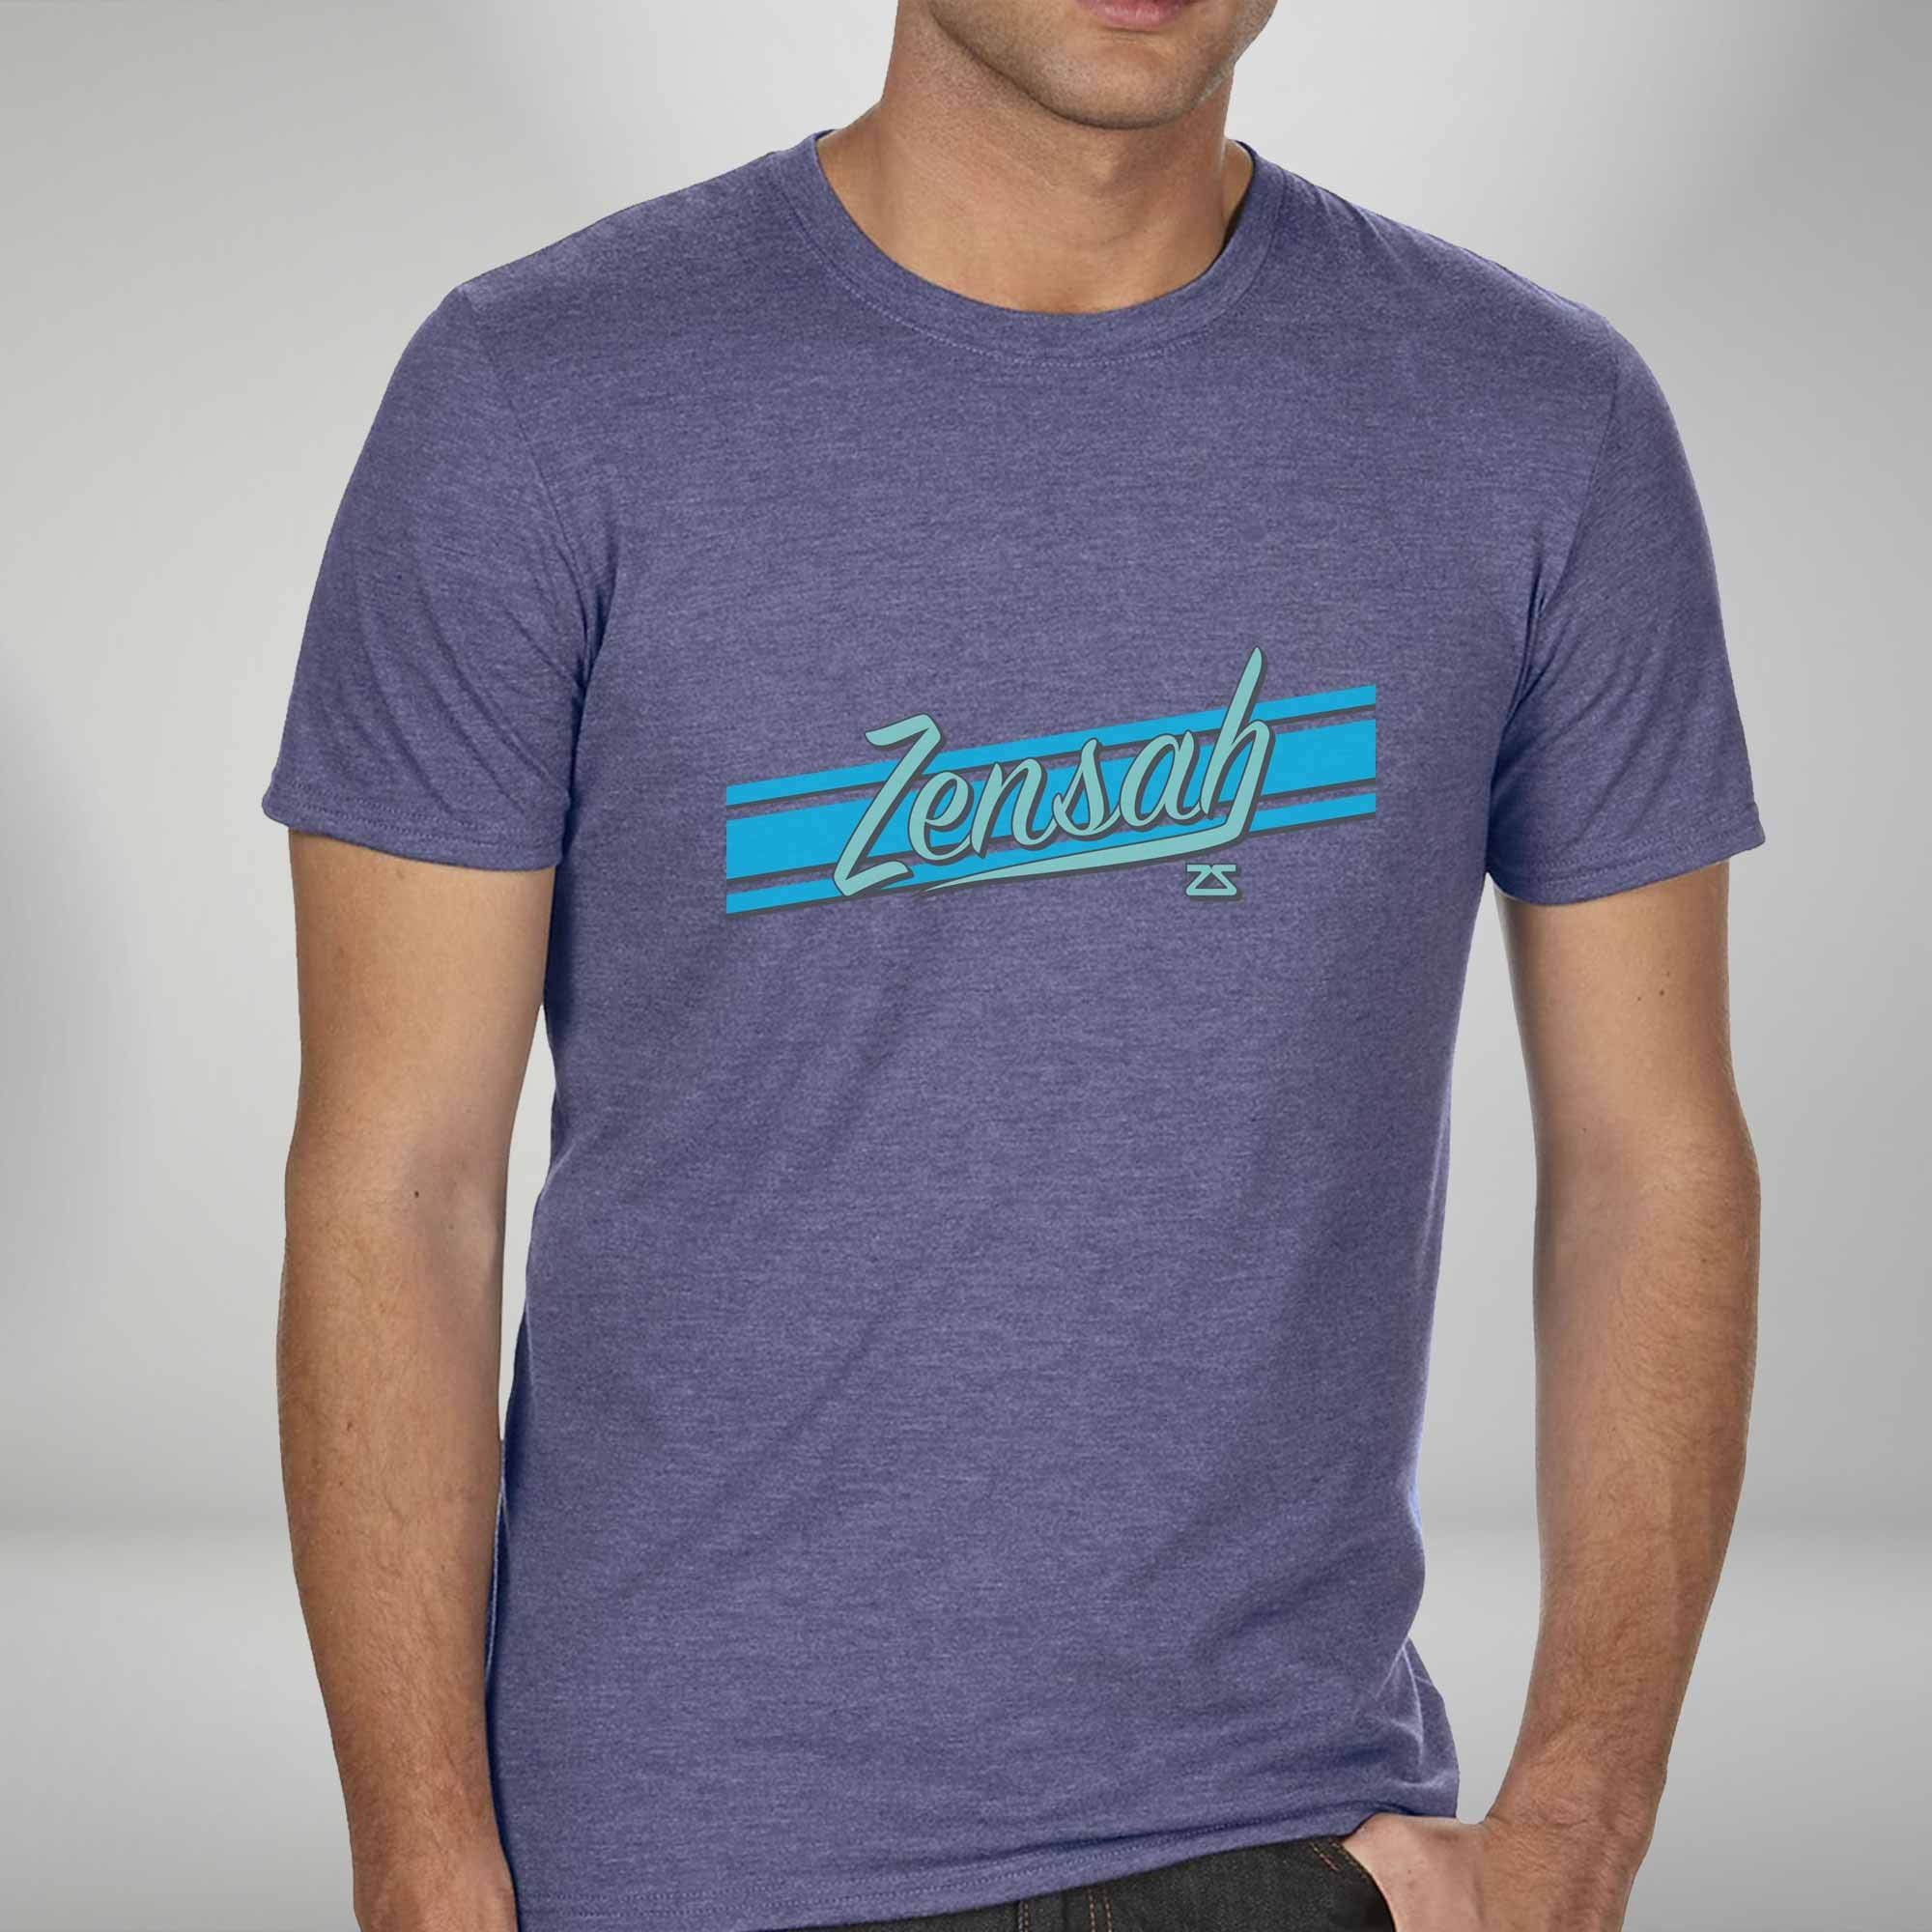 6f2e4dc805f Men s Retro Logo T-Shirt - Zensah